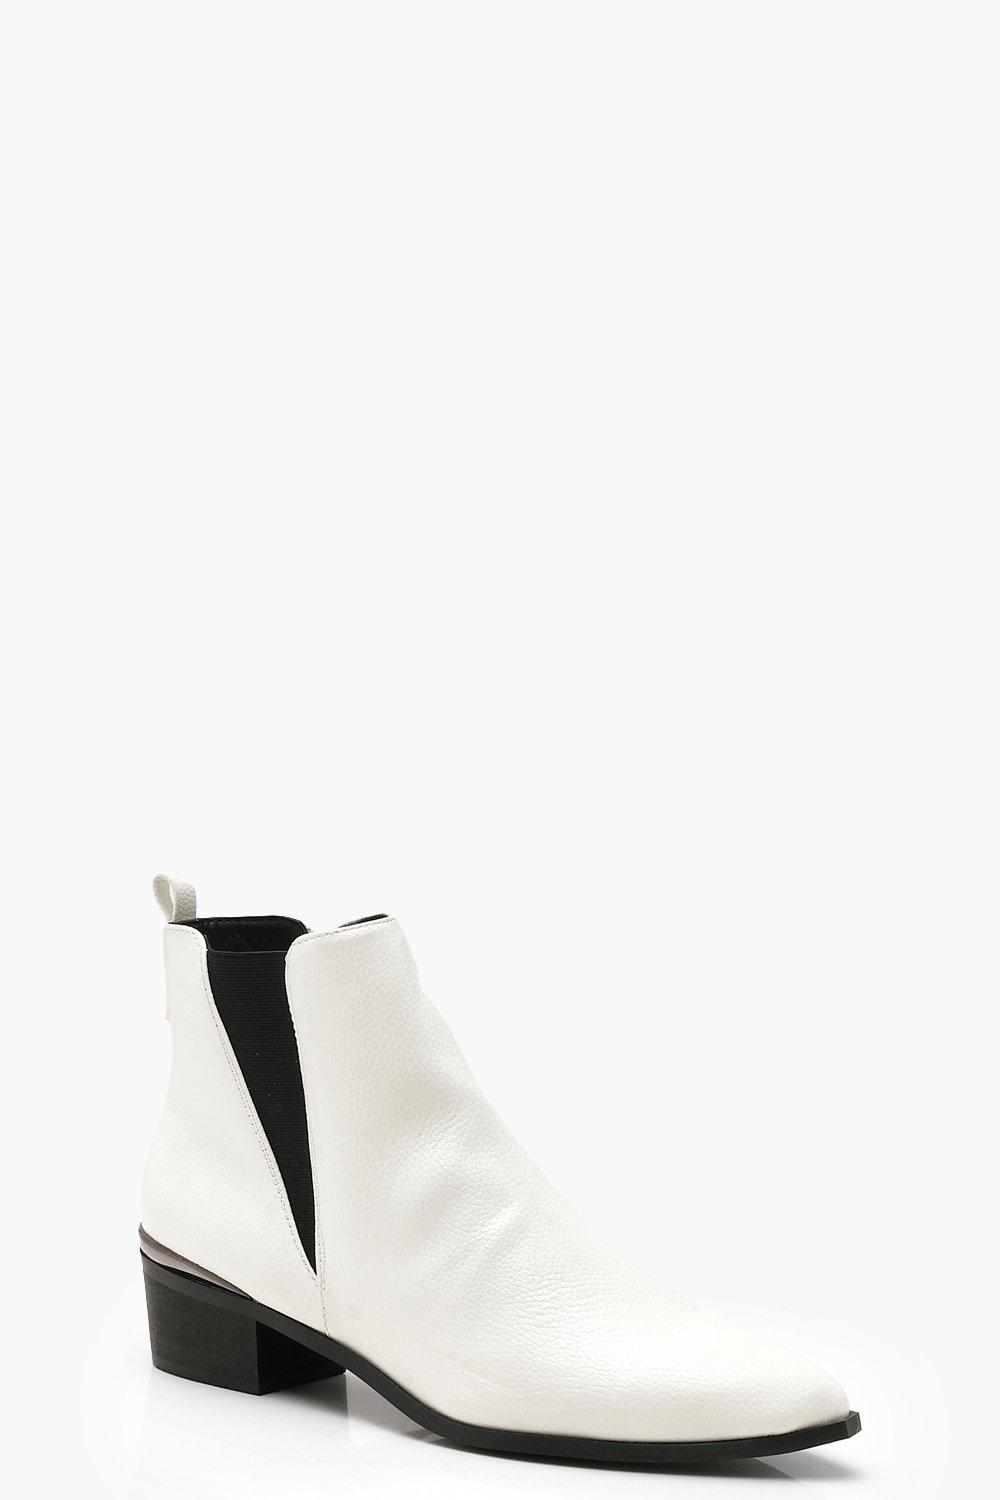 best service 378a8 4d28b Pointed Toe Metallic Trim Chelsea Boots | Boohoo